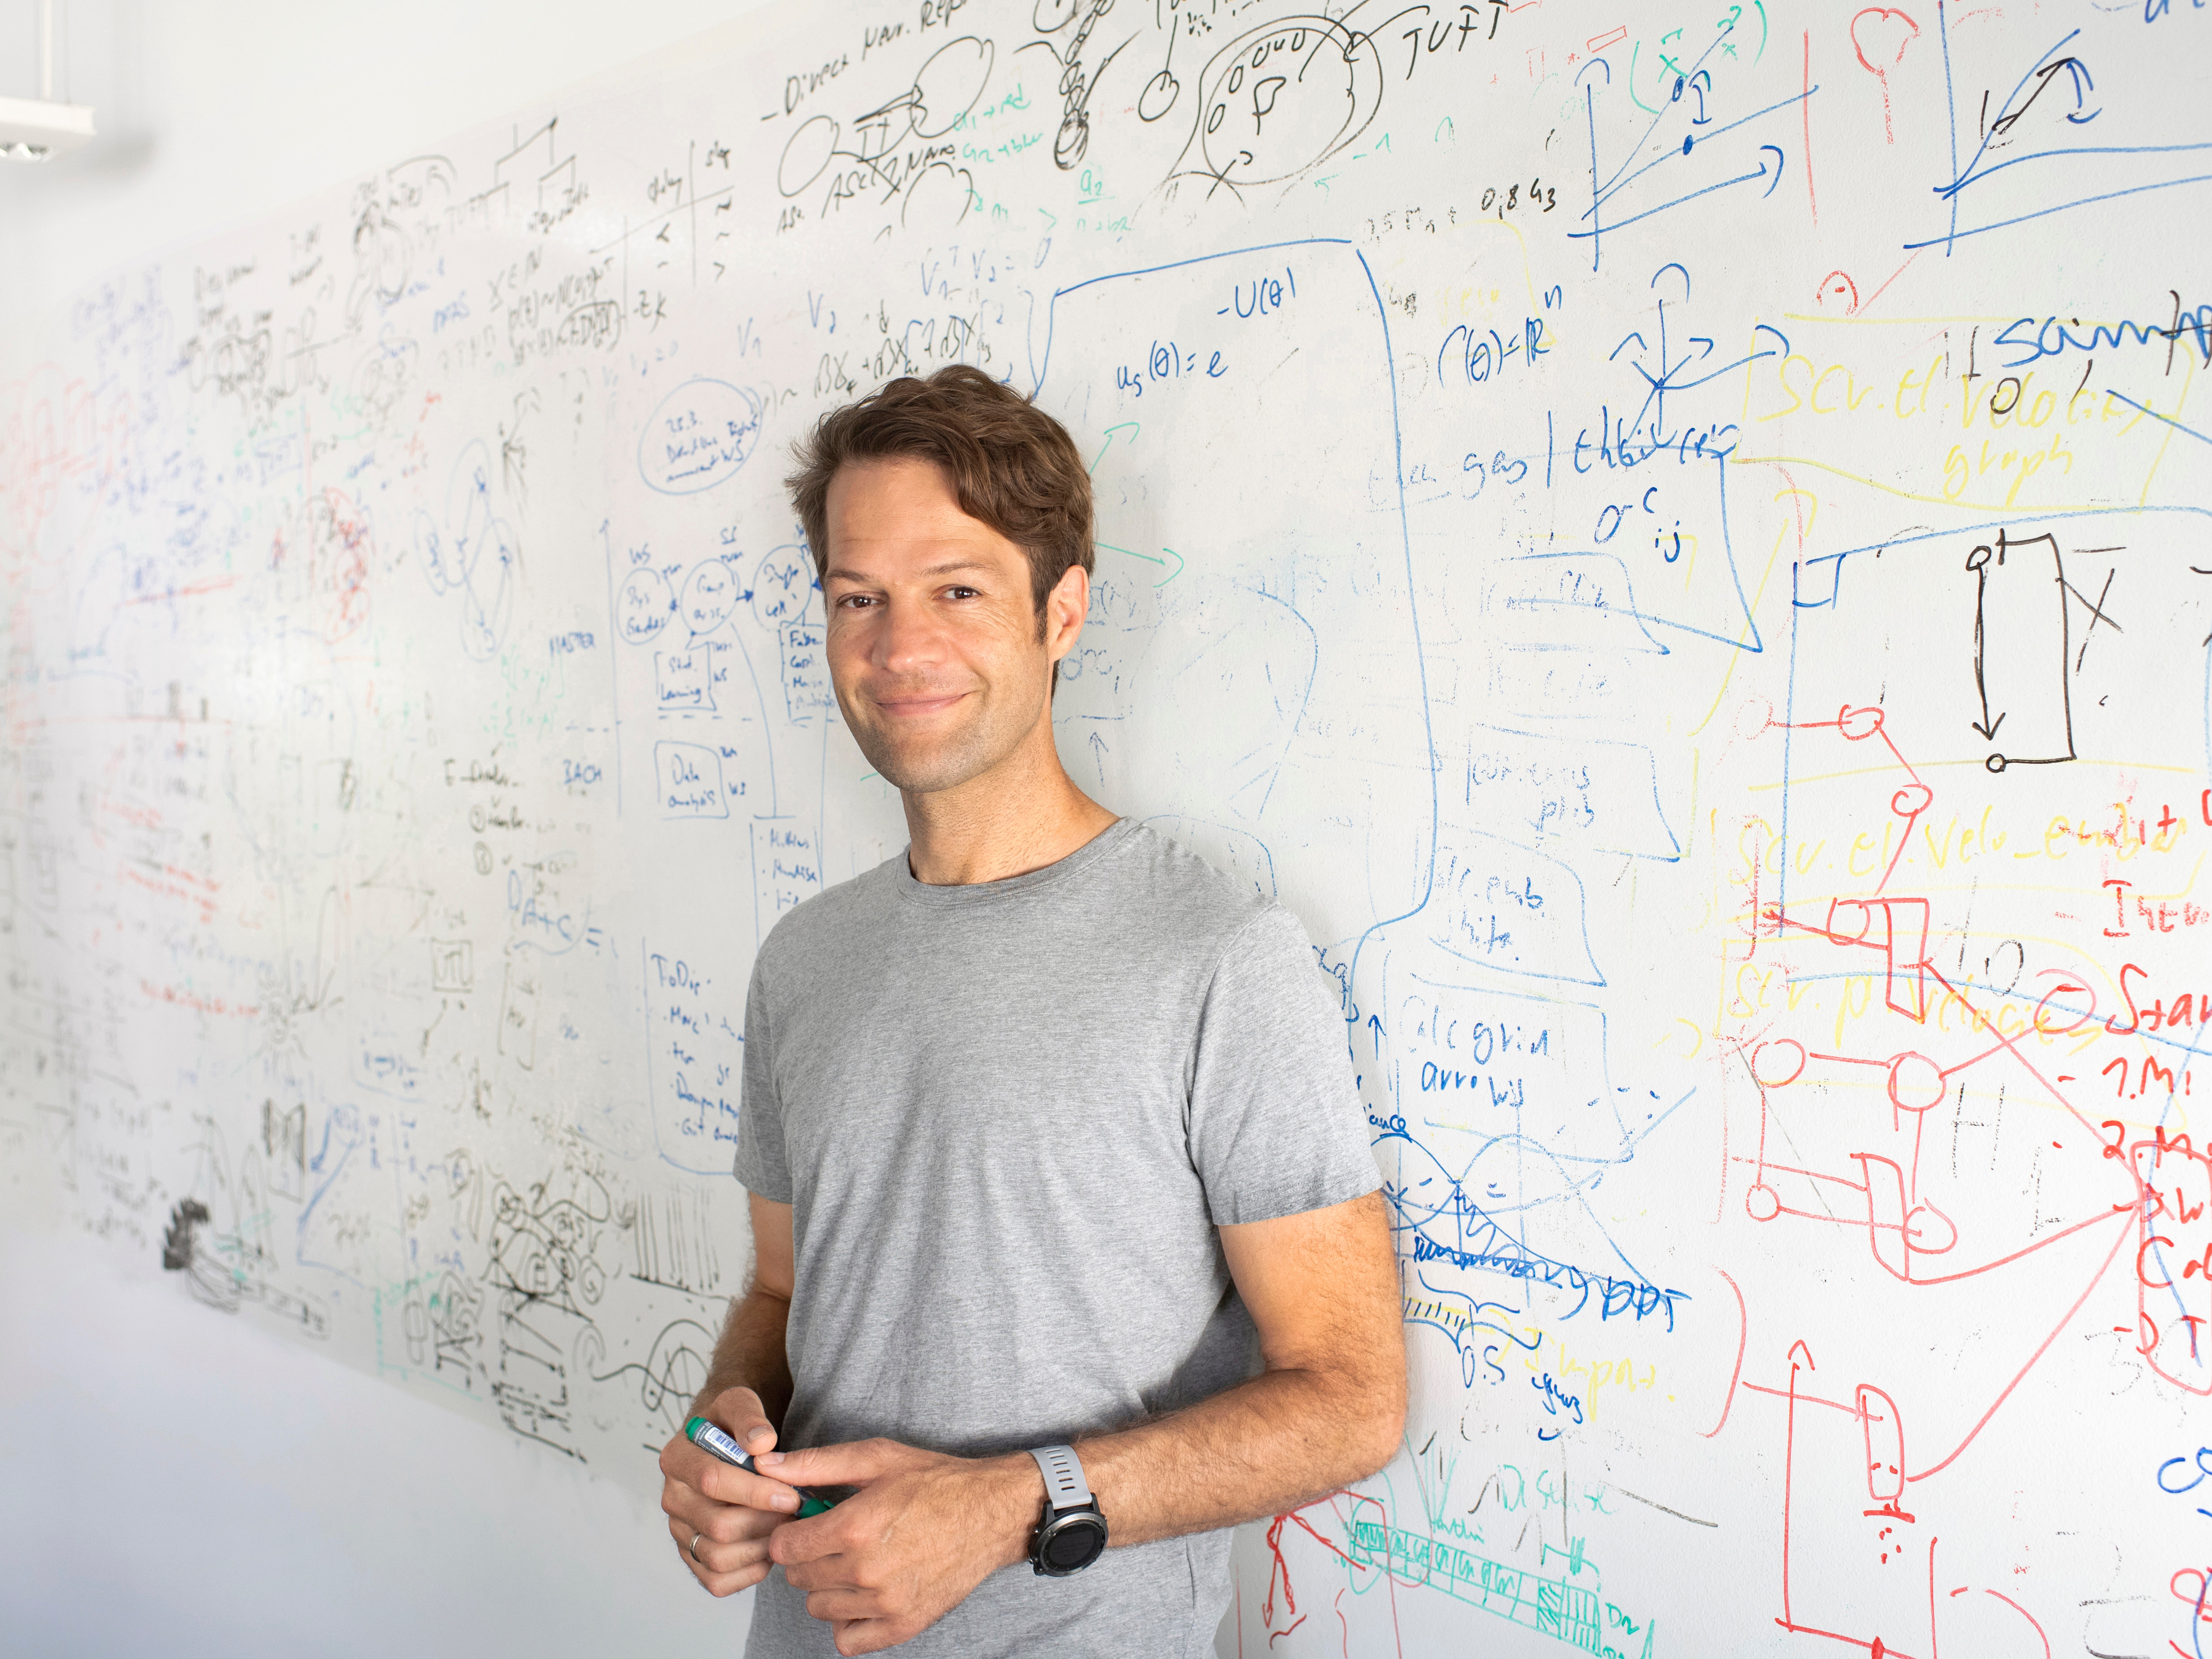 Professor Fabian Theis in front of a white board with sketches and mathematical formulas.